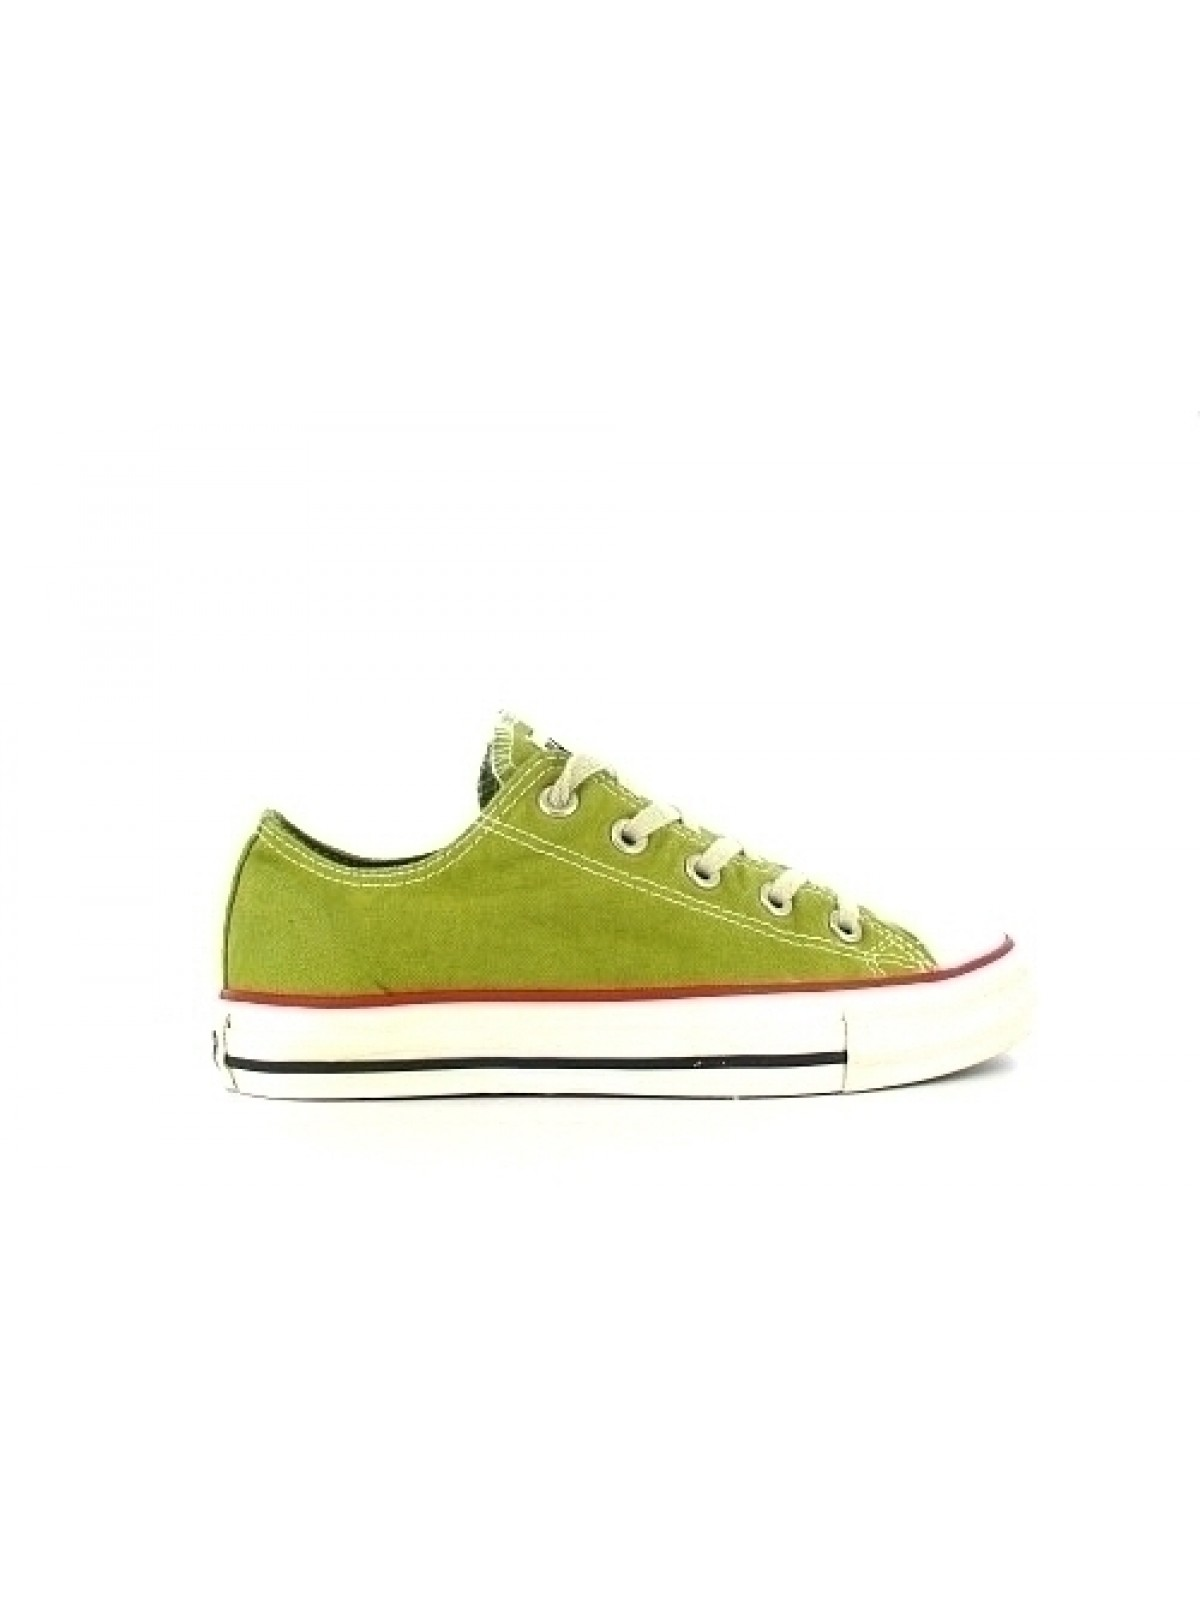 Converse Chuck Taylor all star toile basse vintage anis